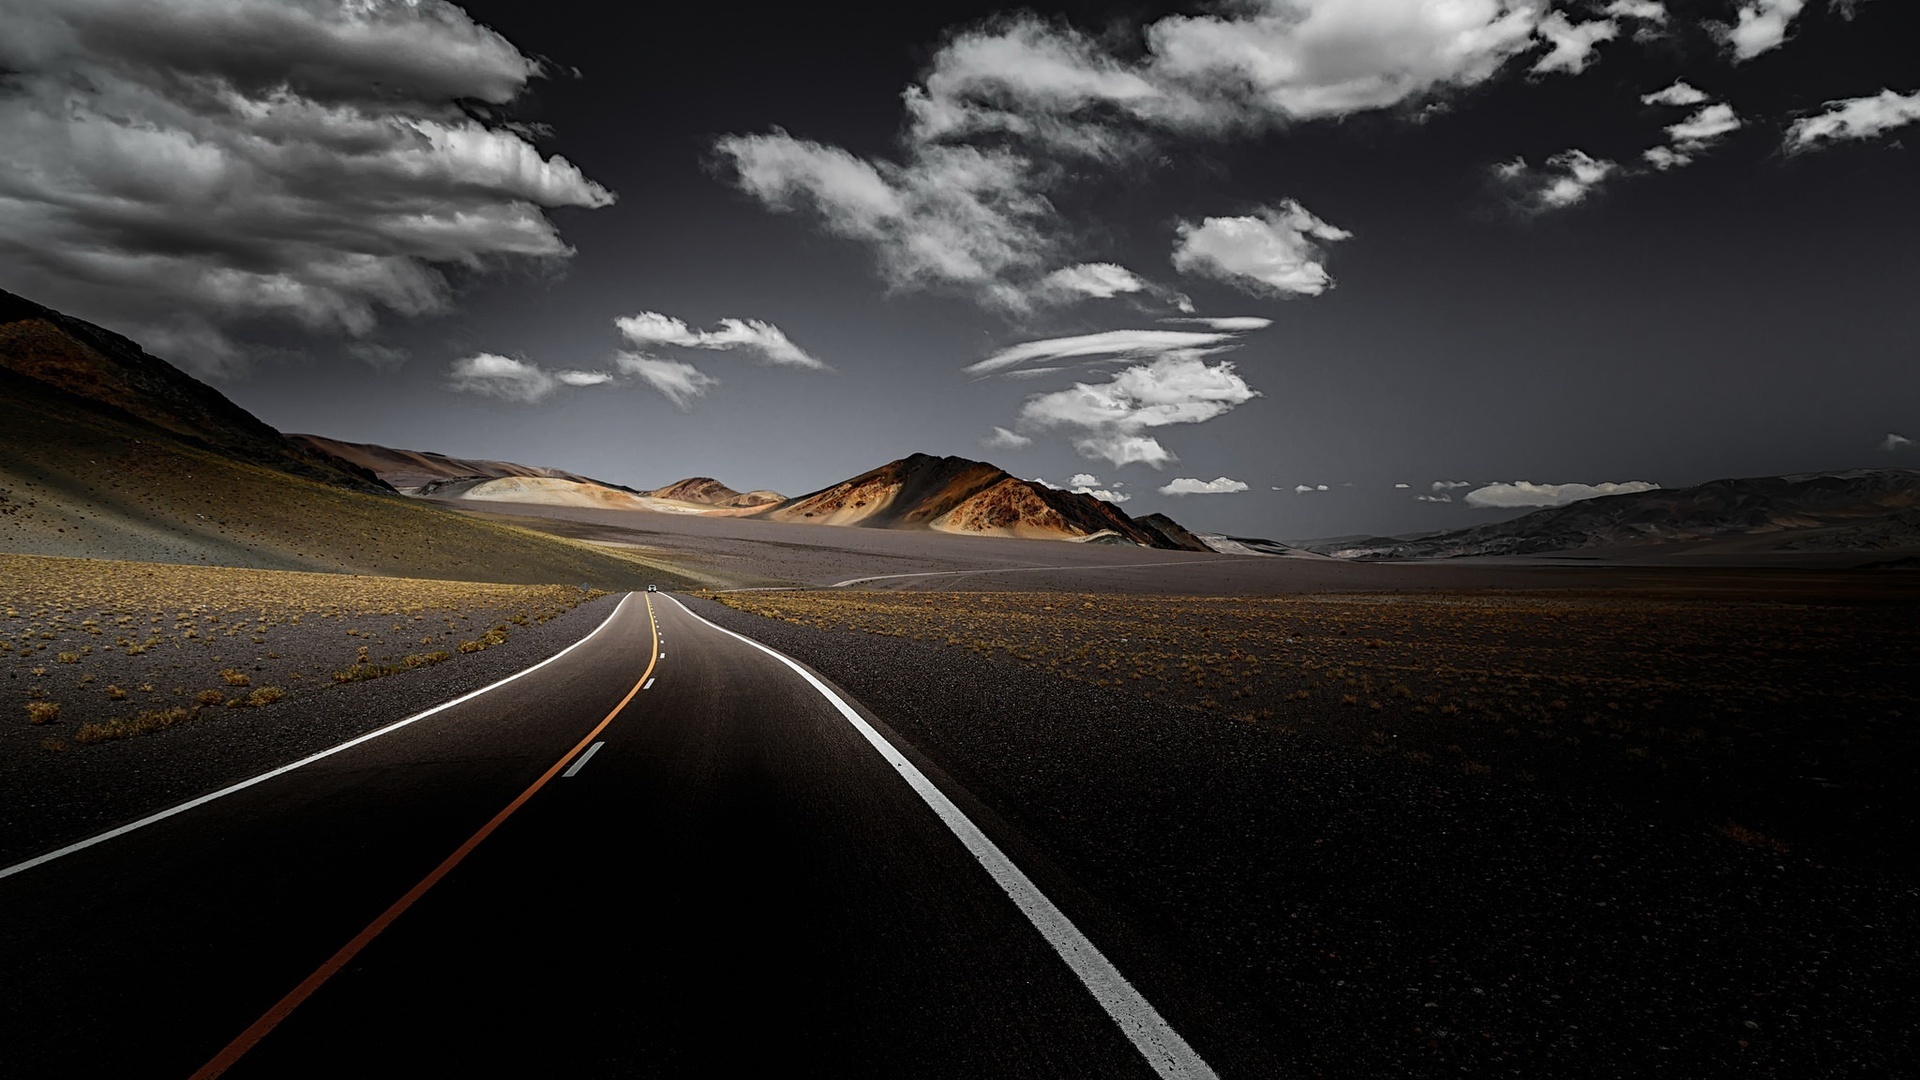 1920x1080 Dark Road Clouds Over Landscape View Front Laptop Full Hd 1080p Hd 4k Wallpapers Images Backgrounds Photos And Pictures